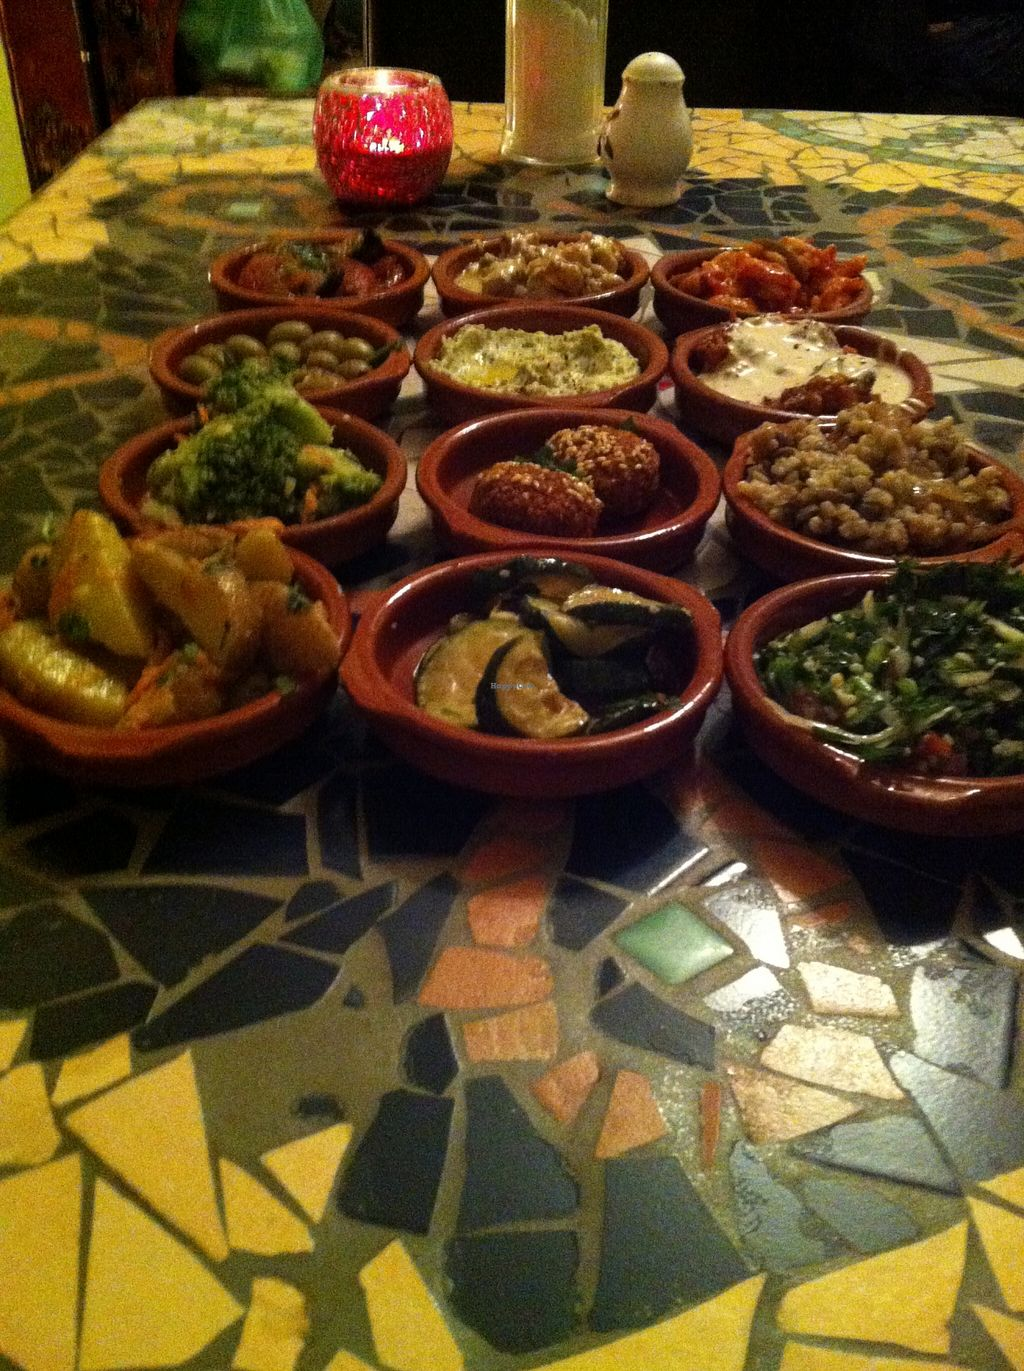 """Photo of Azeitona - Beckstrasse  by <a href=""""/members/profile/aenkelkind"""">aenkelkind</a> <br/>Mezze for Two at Azeitona <br/> September 7, 2015  - <a href='/contact/abuse/image/20605/116708'>Report</a>"""